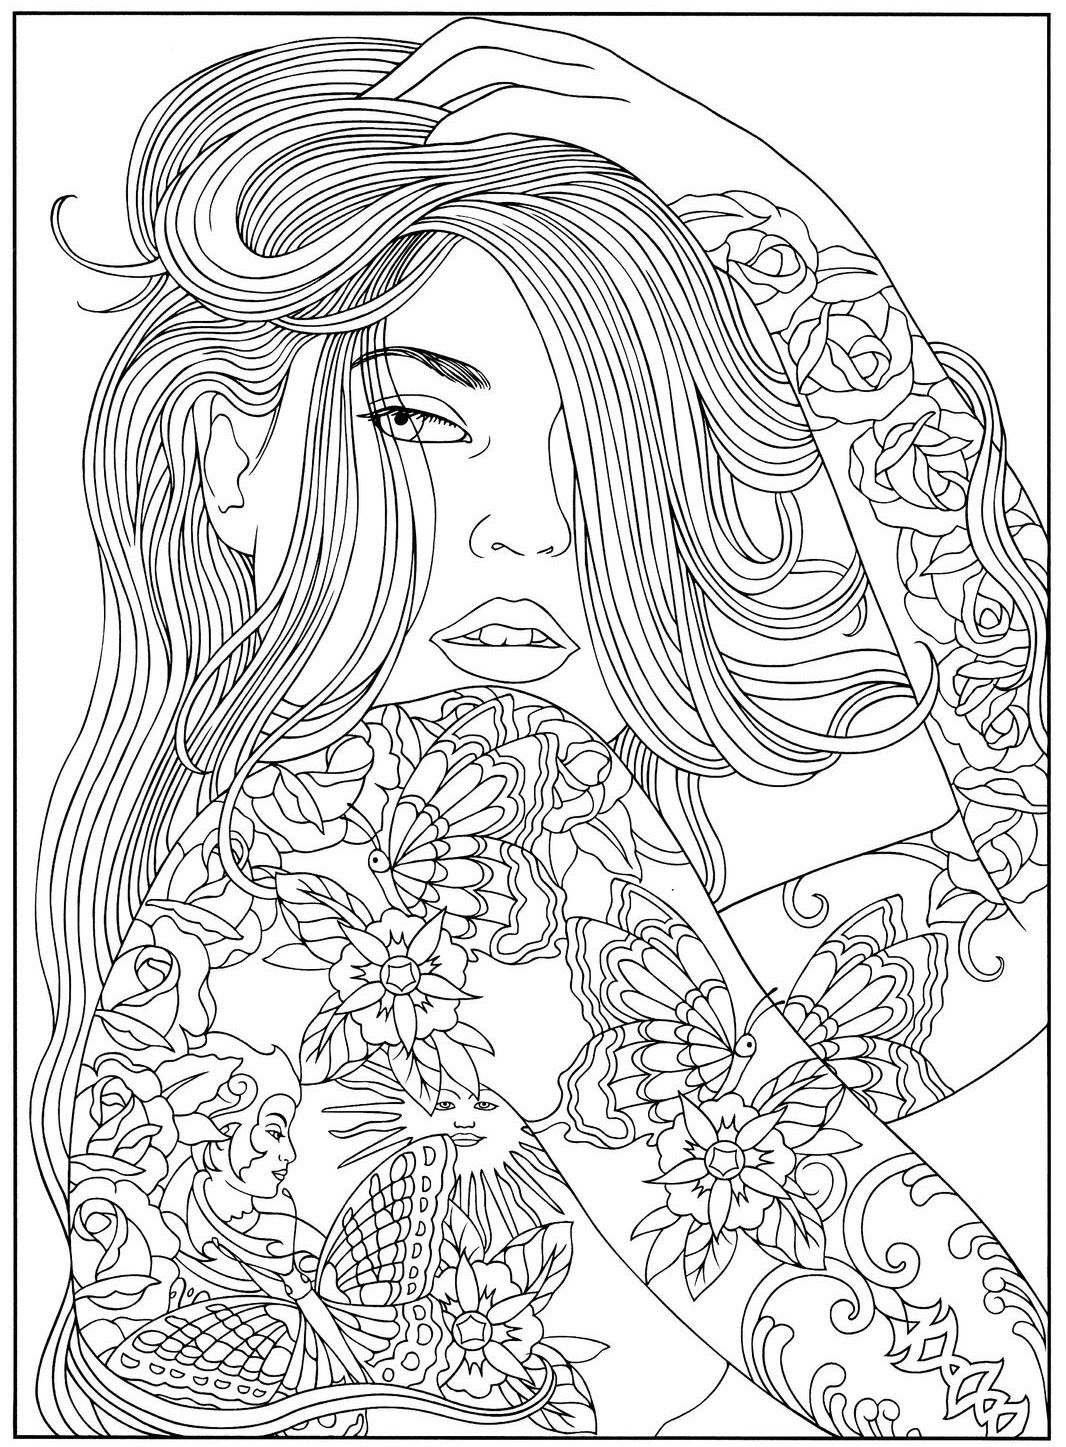 Pin By Evelien Bakker On Coloring Pages People Coloring Pages Mandala Coloring Pages Animal Coloring Pages